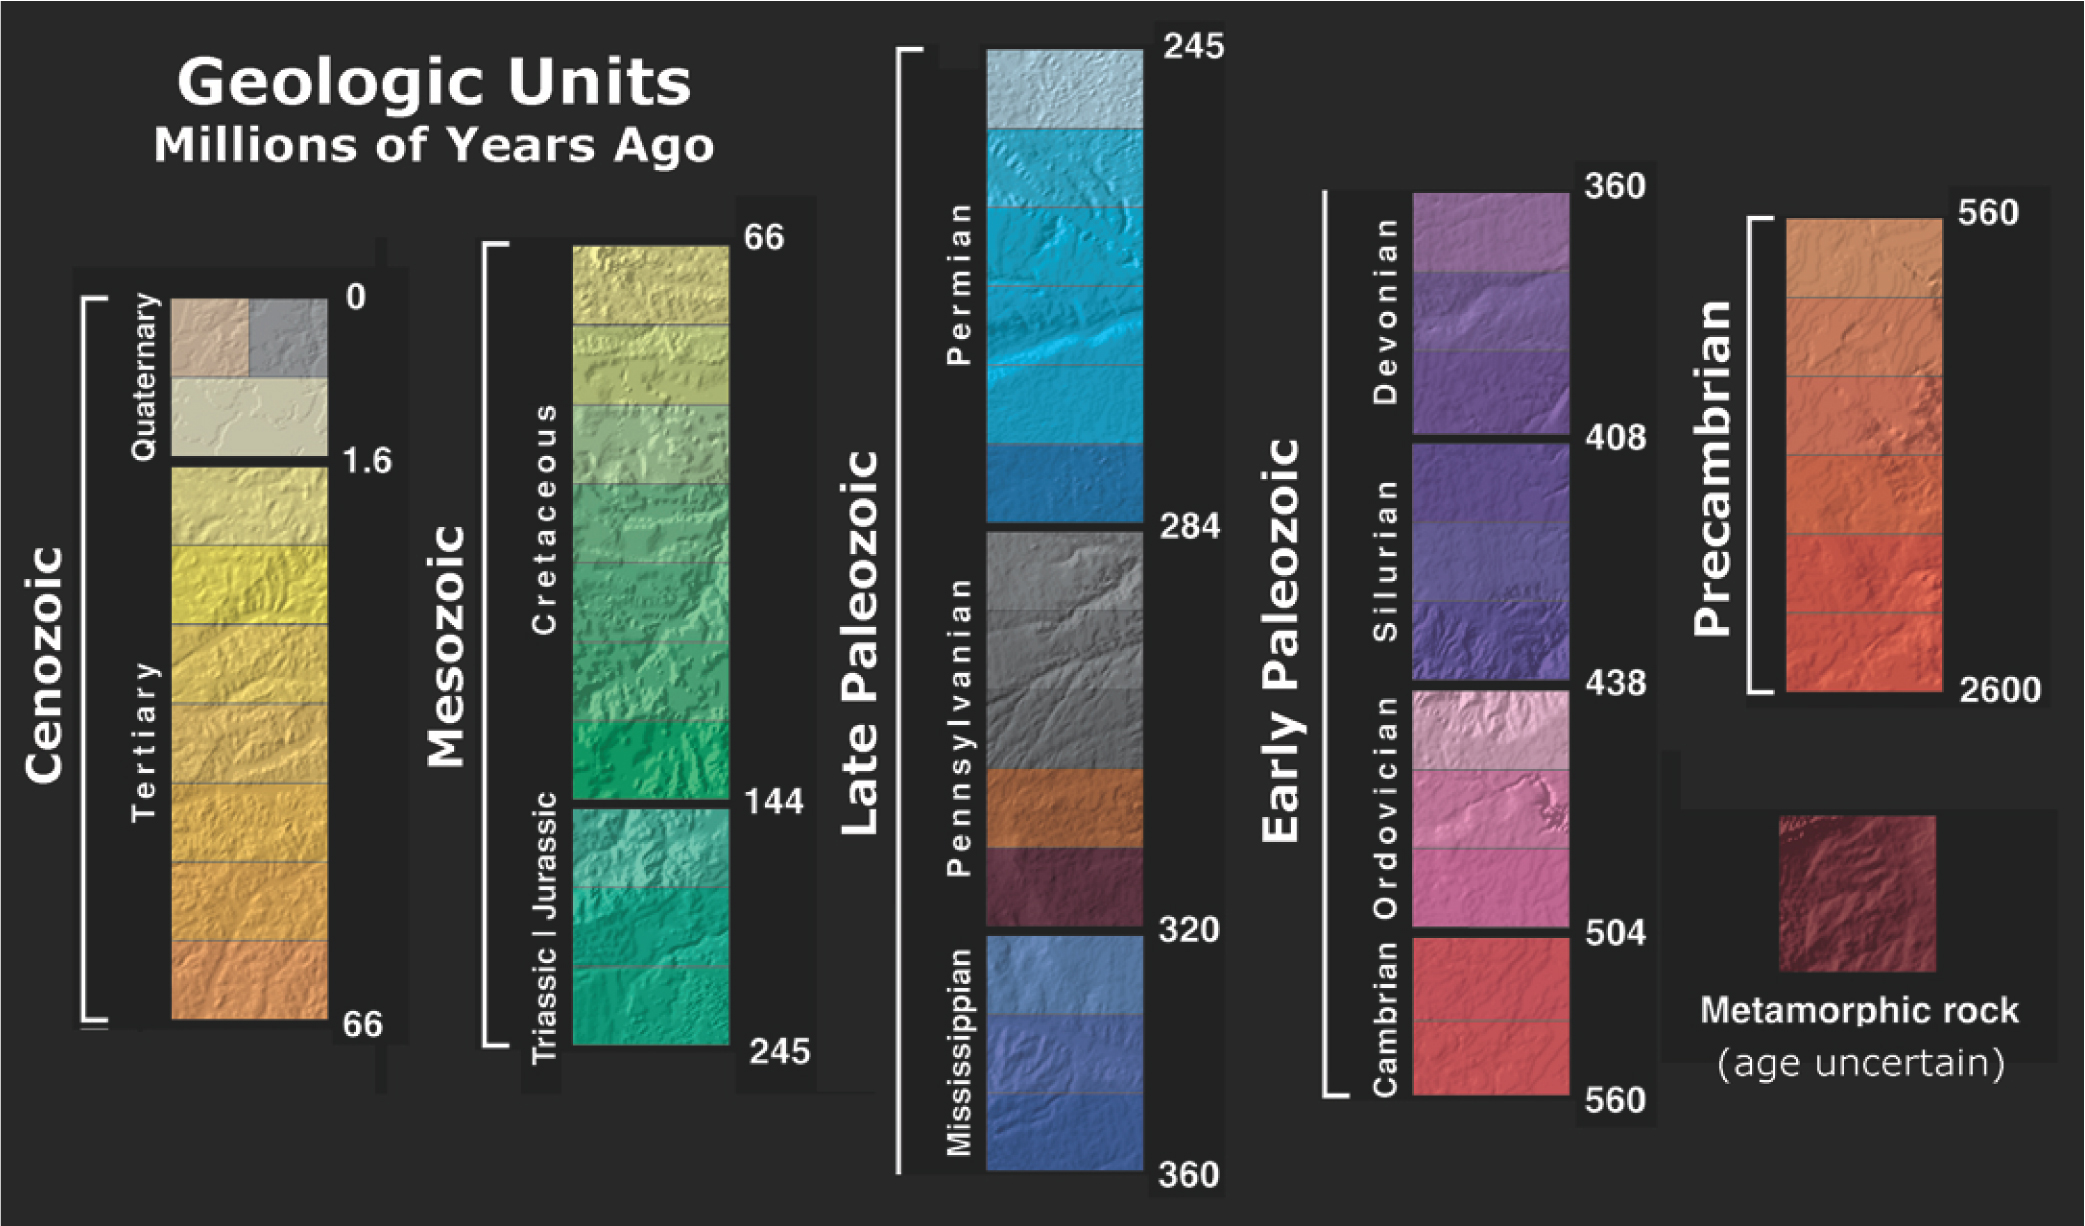 Color-coded map key for geologic ages